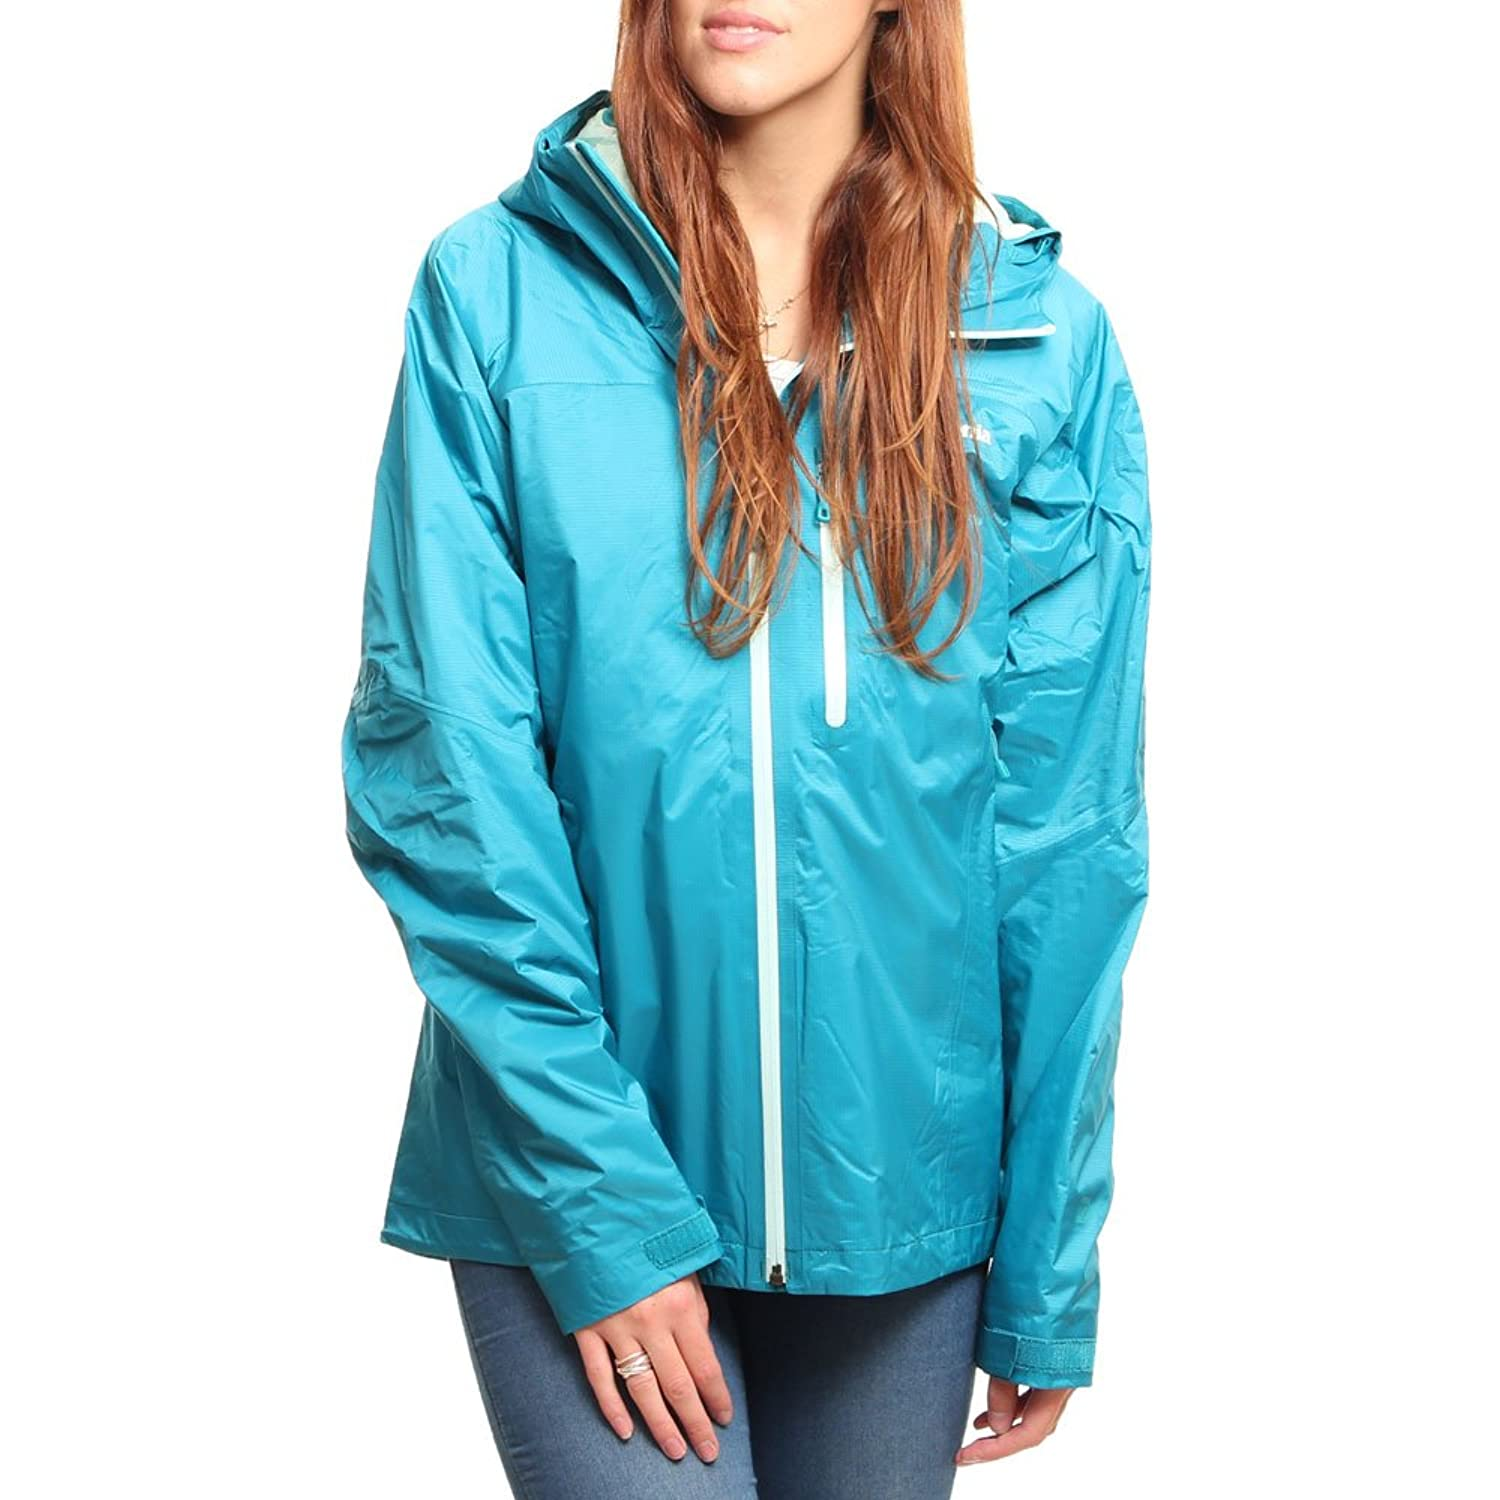 Patagonia W Insulated Torrentshell Jacket - Tobago Blue - - Wasserdichte isolierte Damen H2No Regenjacke